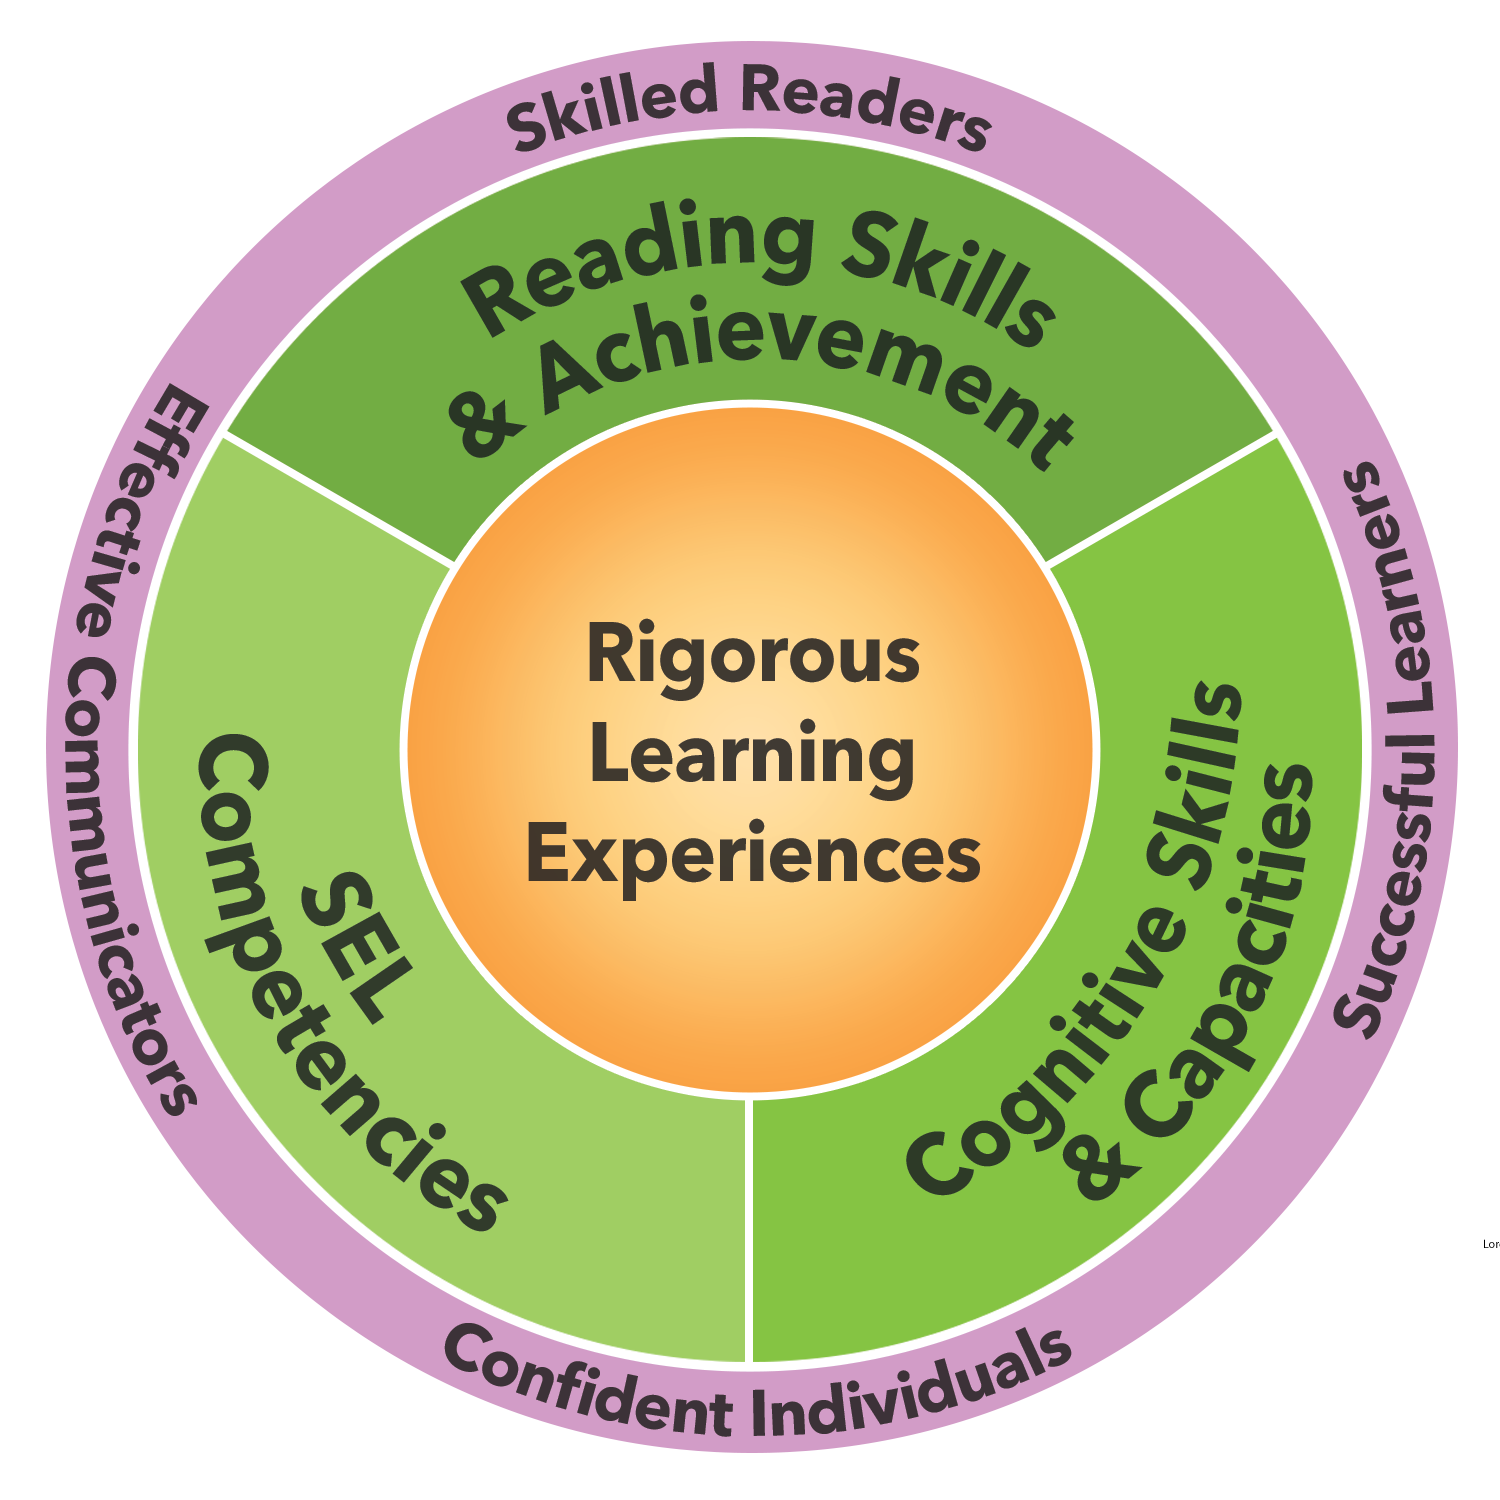 Circle diagram for the impact of reading achievement